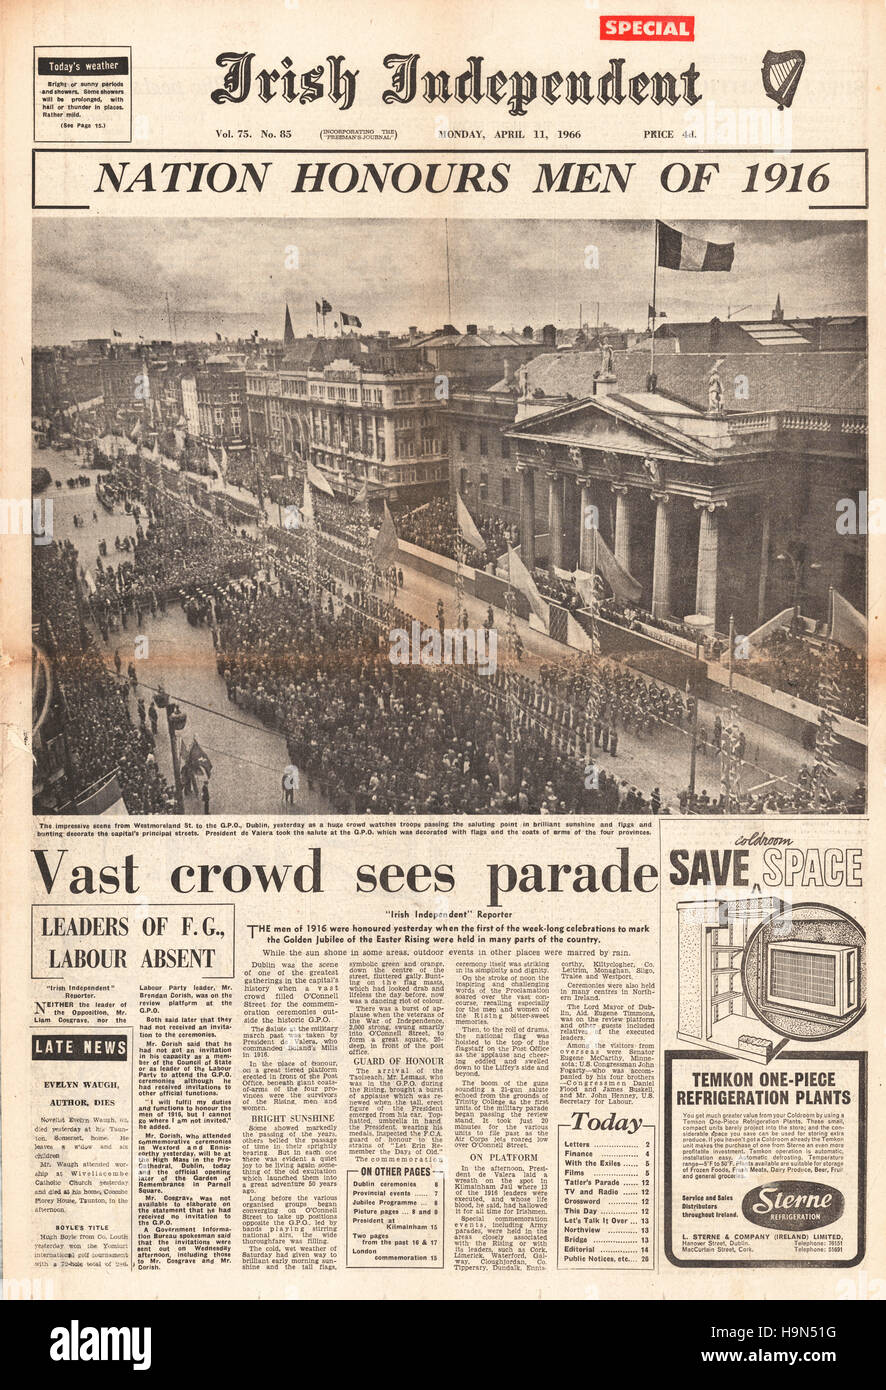 1966 Irish Independence front page Centenary Parade of Easter Uprising - Stock Image